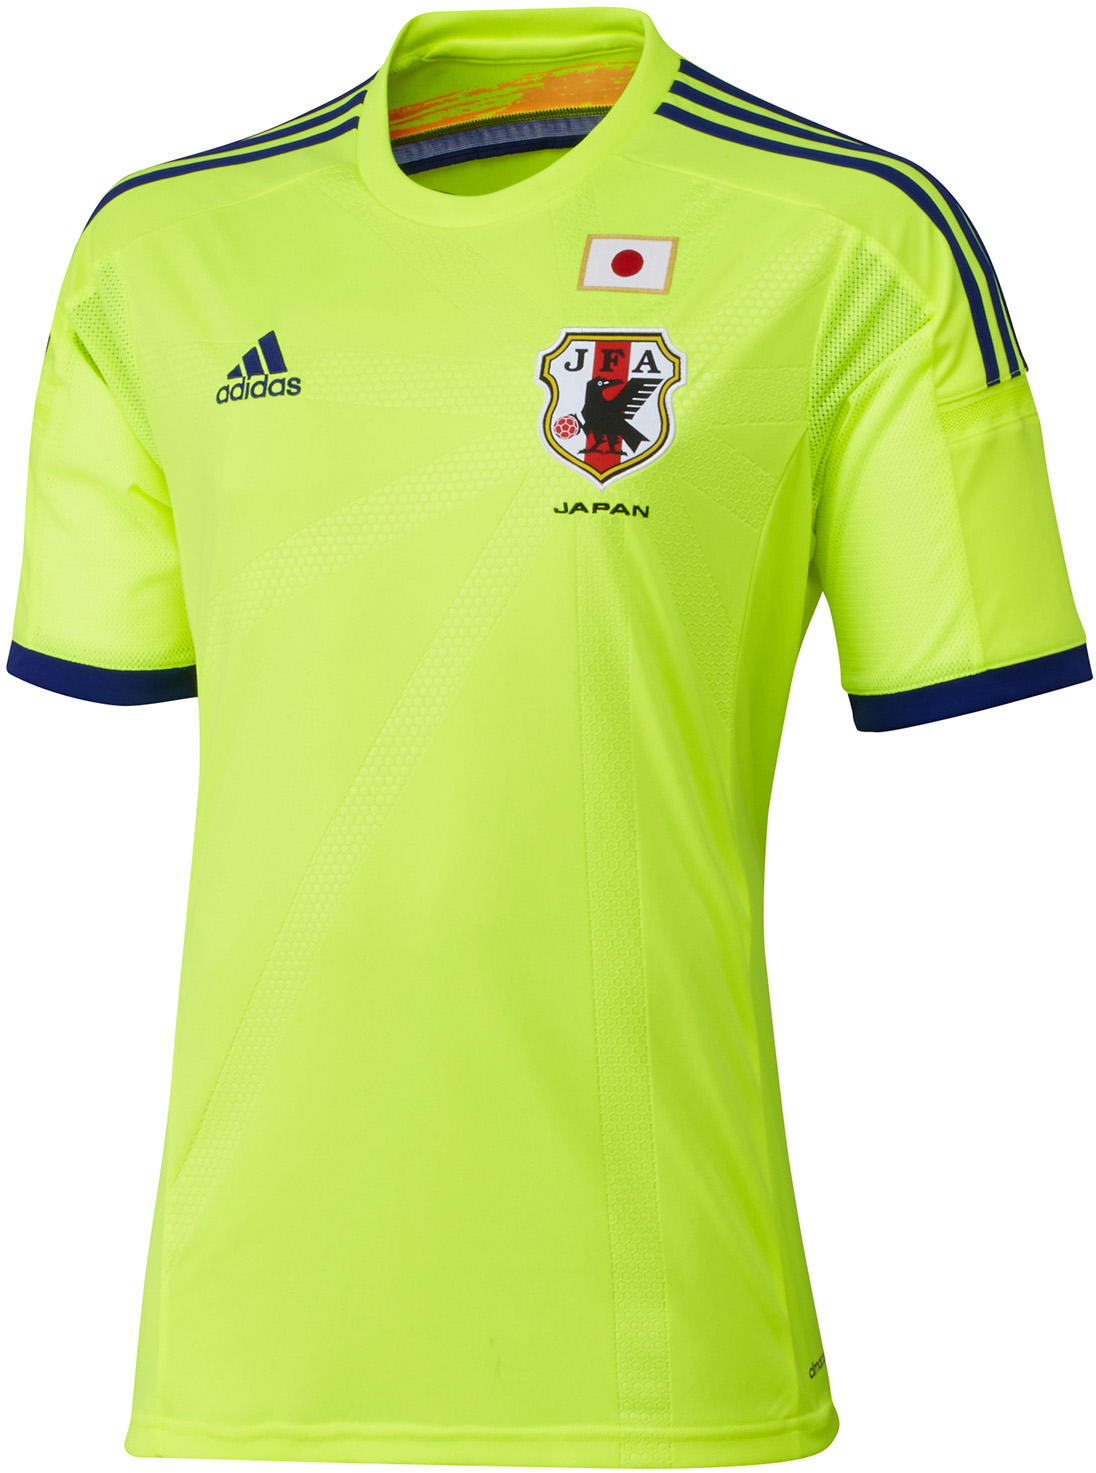 Japan 2014 World Cup Kits Released